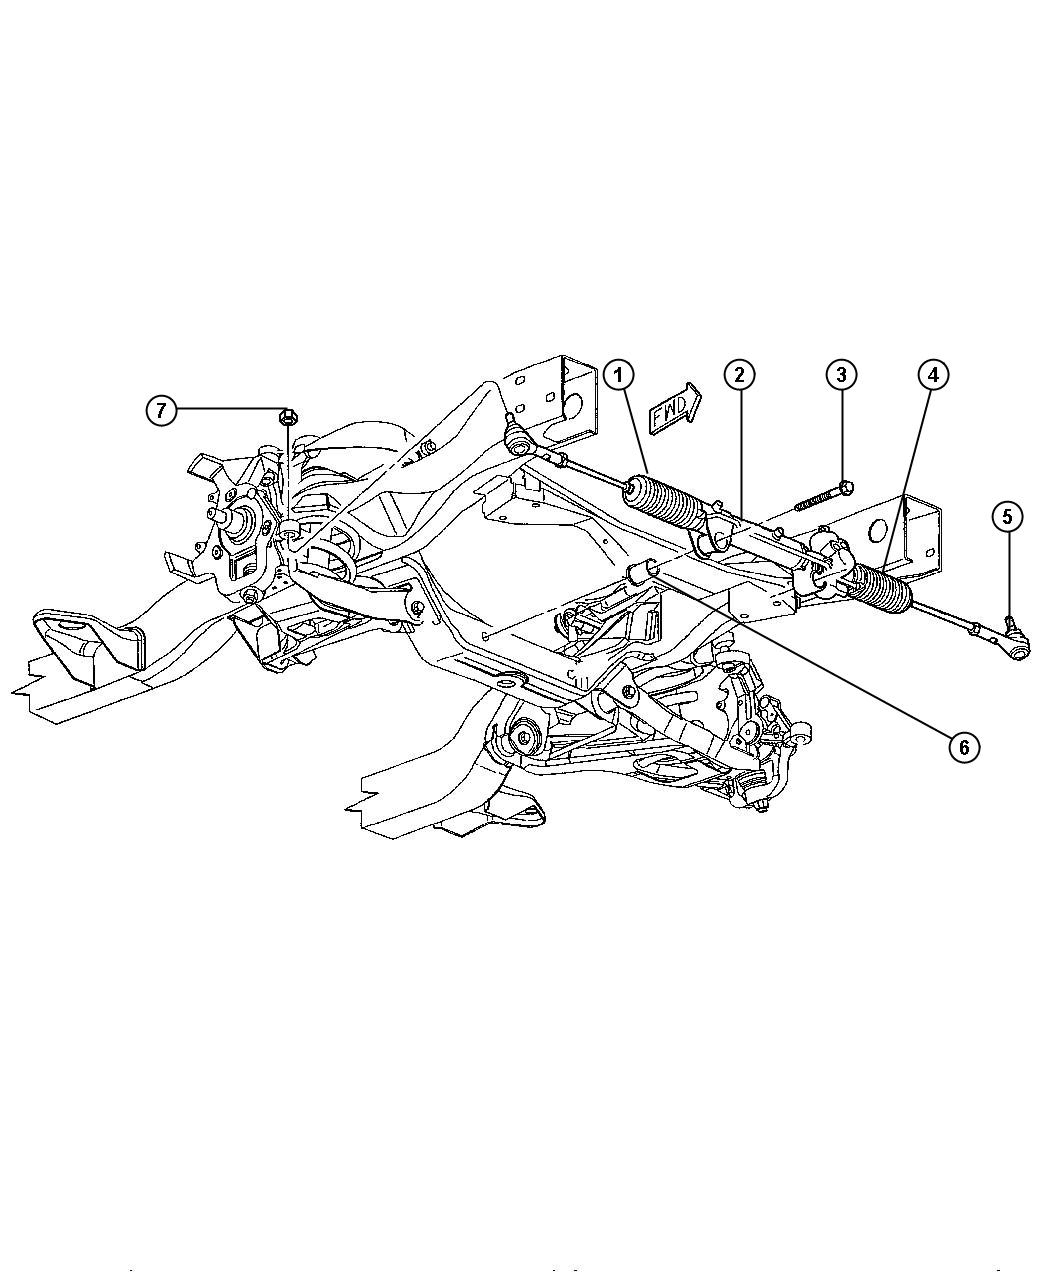 2001 dodge ram 1500 speaker wire diagram  u2013 wirdig